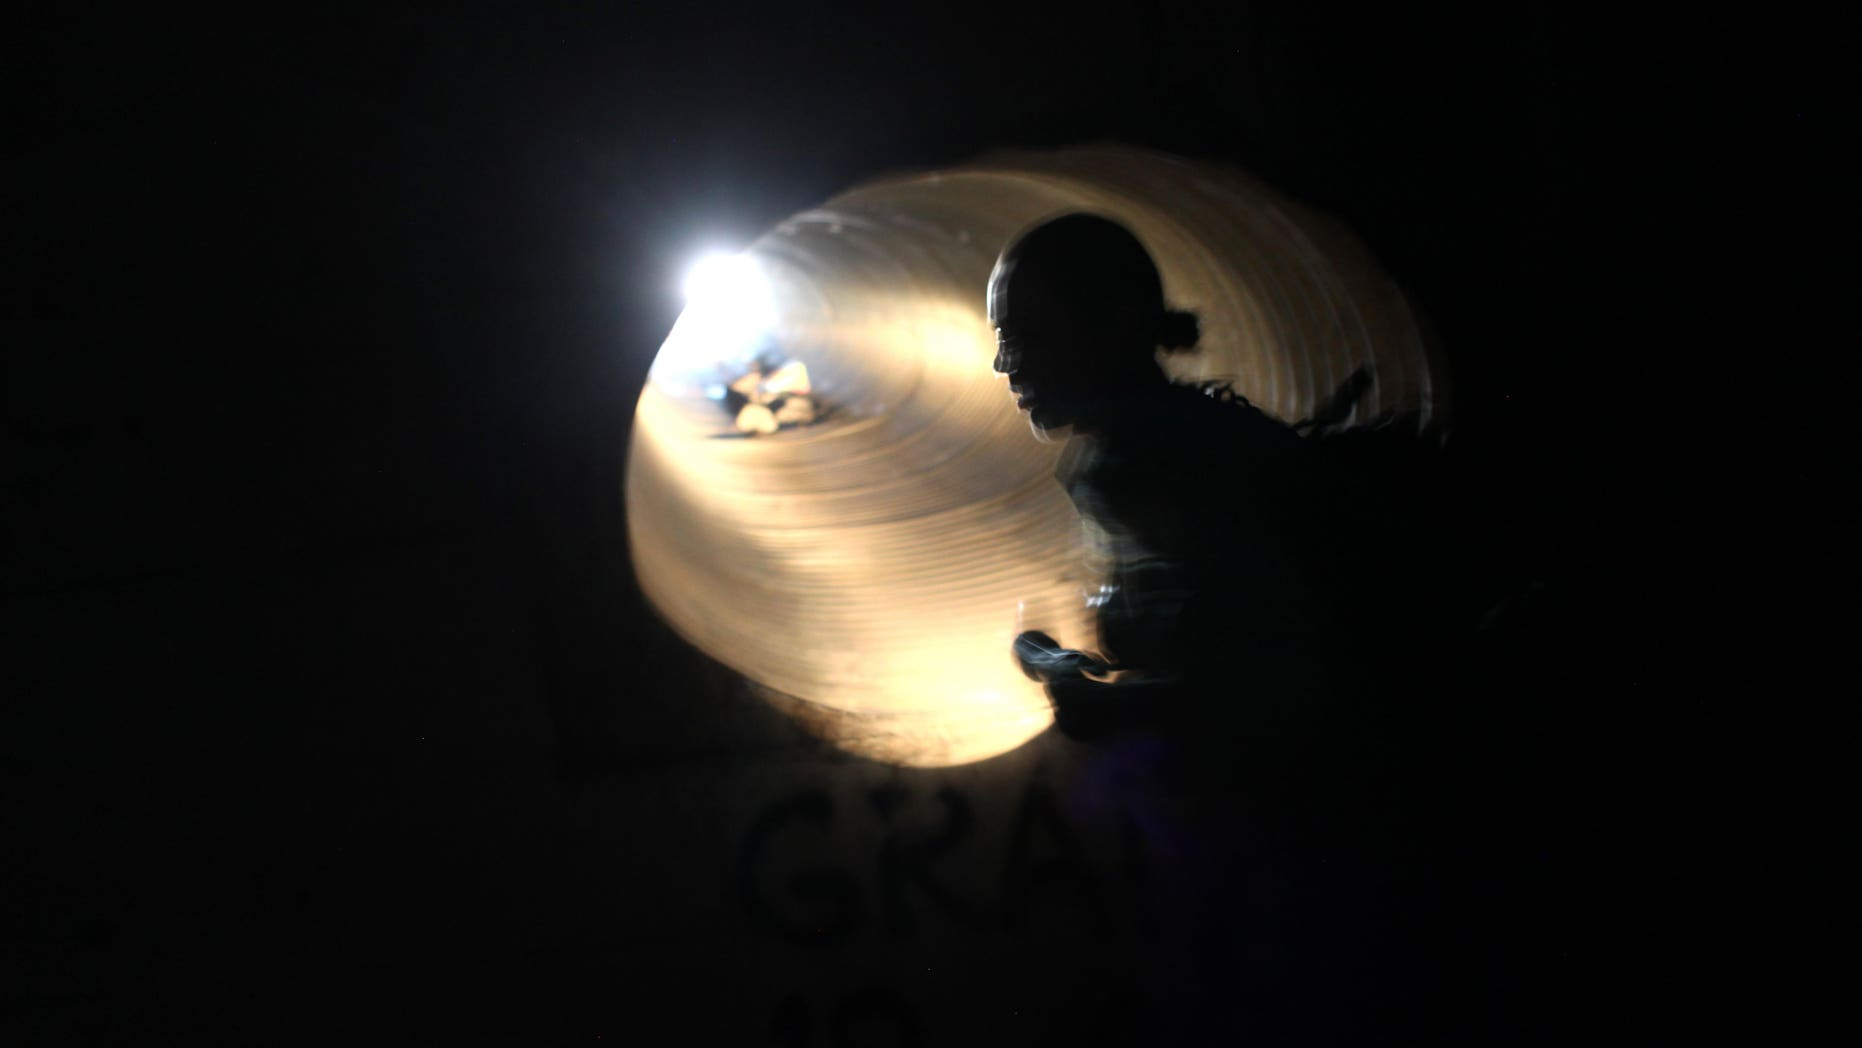 (FILE PHOTO) U.S. Border Patrol agent Colleen Agle searches for evidence of drug smugglers in a drainage tunnel that runs under the U.S.- Mexico border on December 7, 2010 in Nogales, Arizona.  (Photo by John Moore/Getty Images)